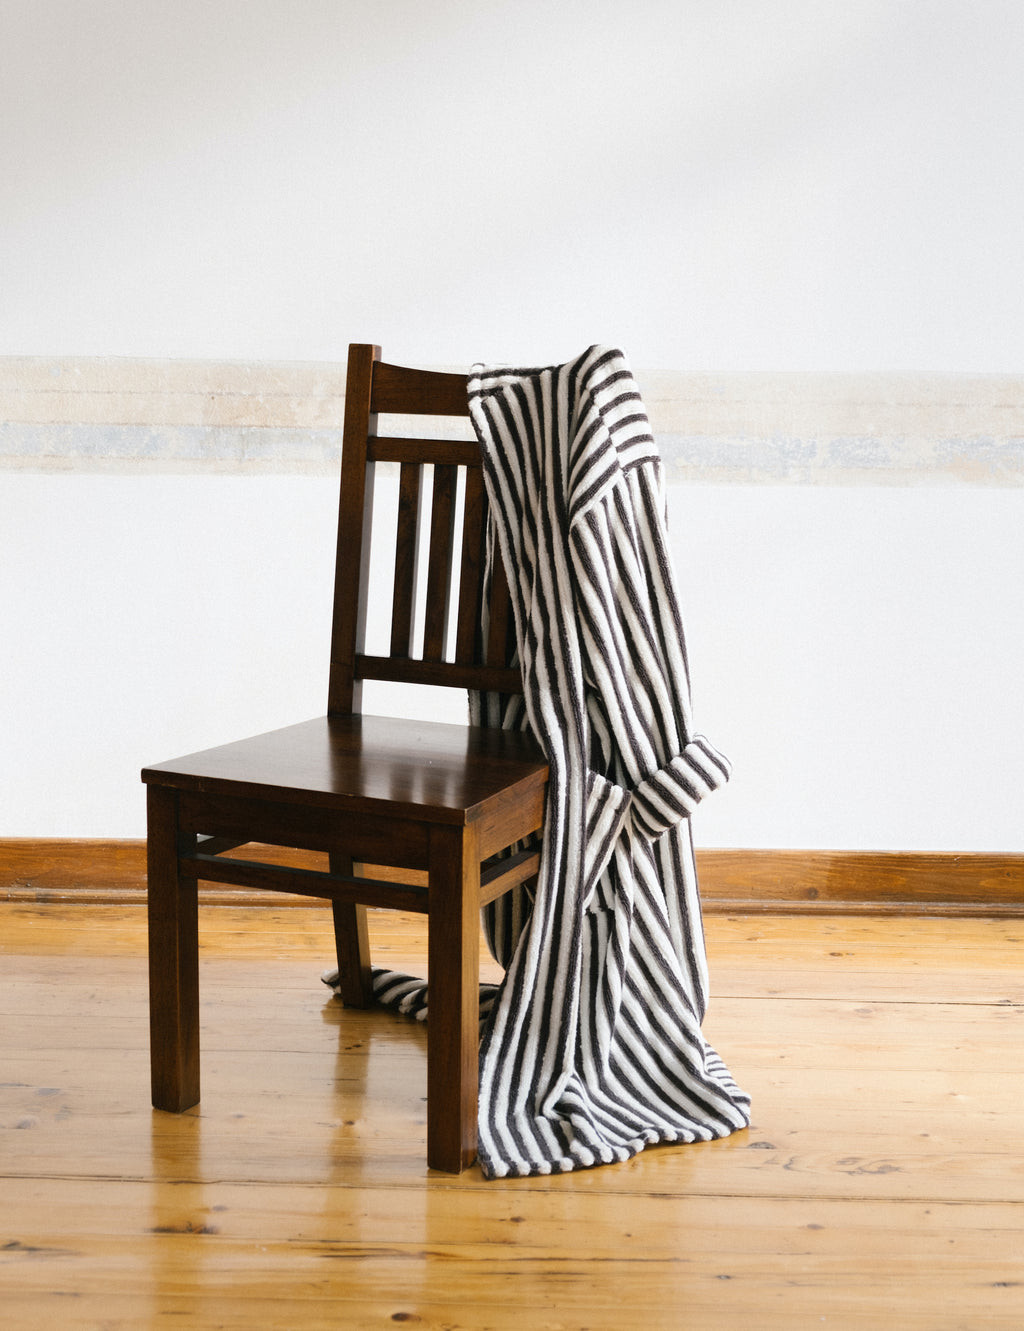 brown and white striped cotton bathrobe hanging on wooden chair